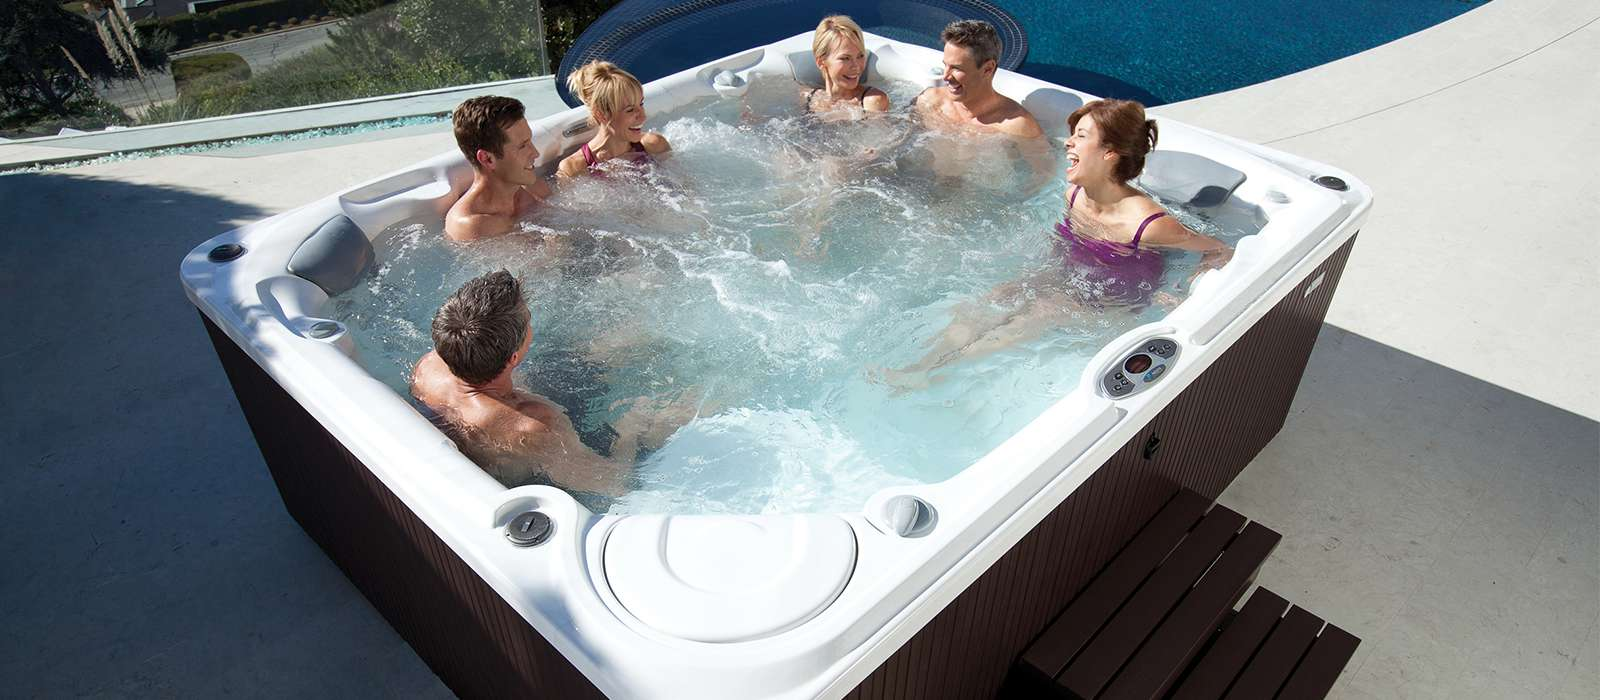 Gleam 8 person Hot Tub from Limelight Collection